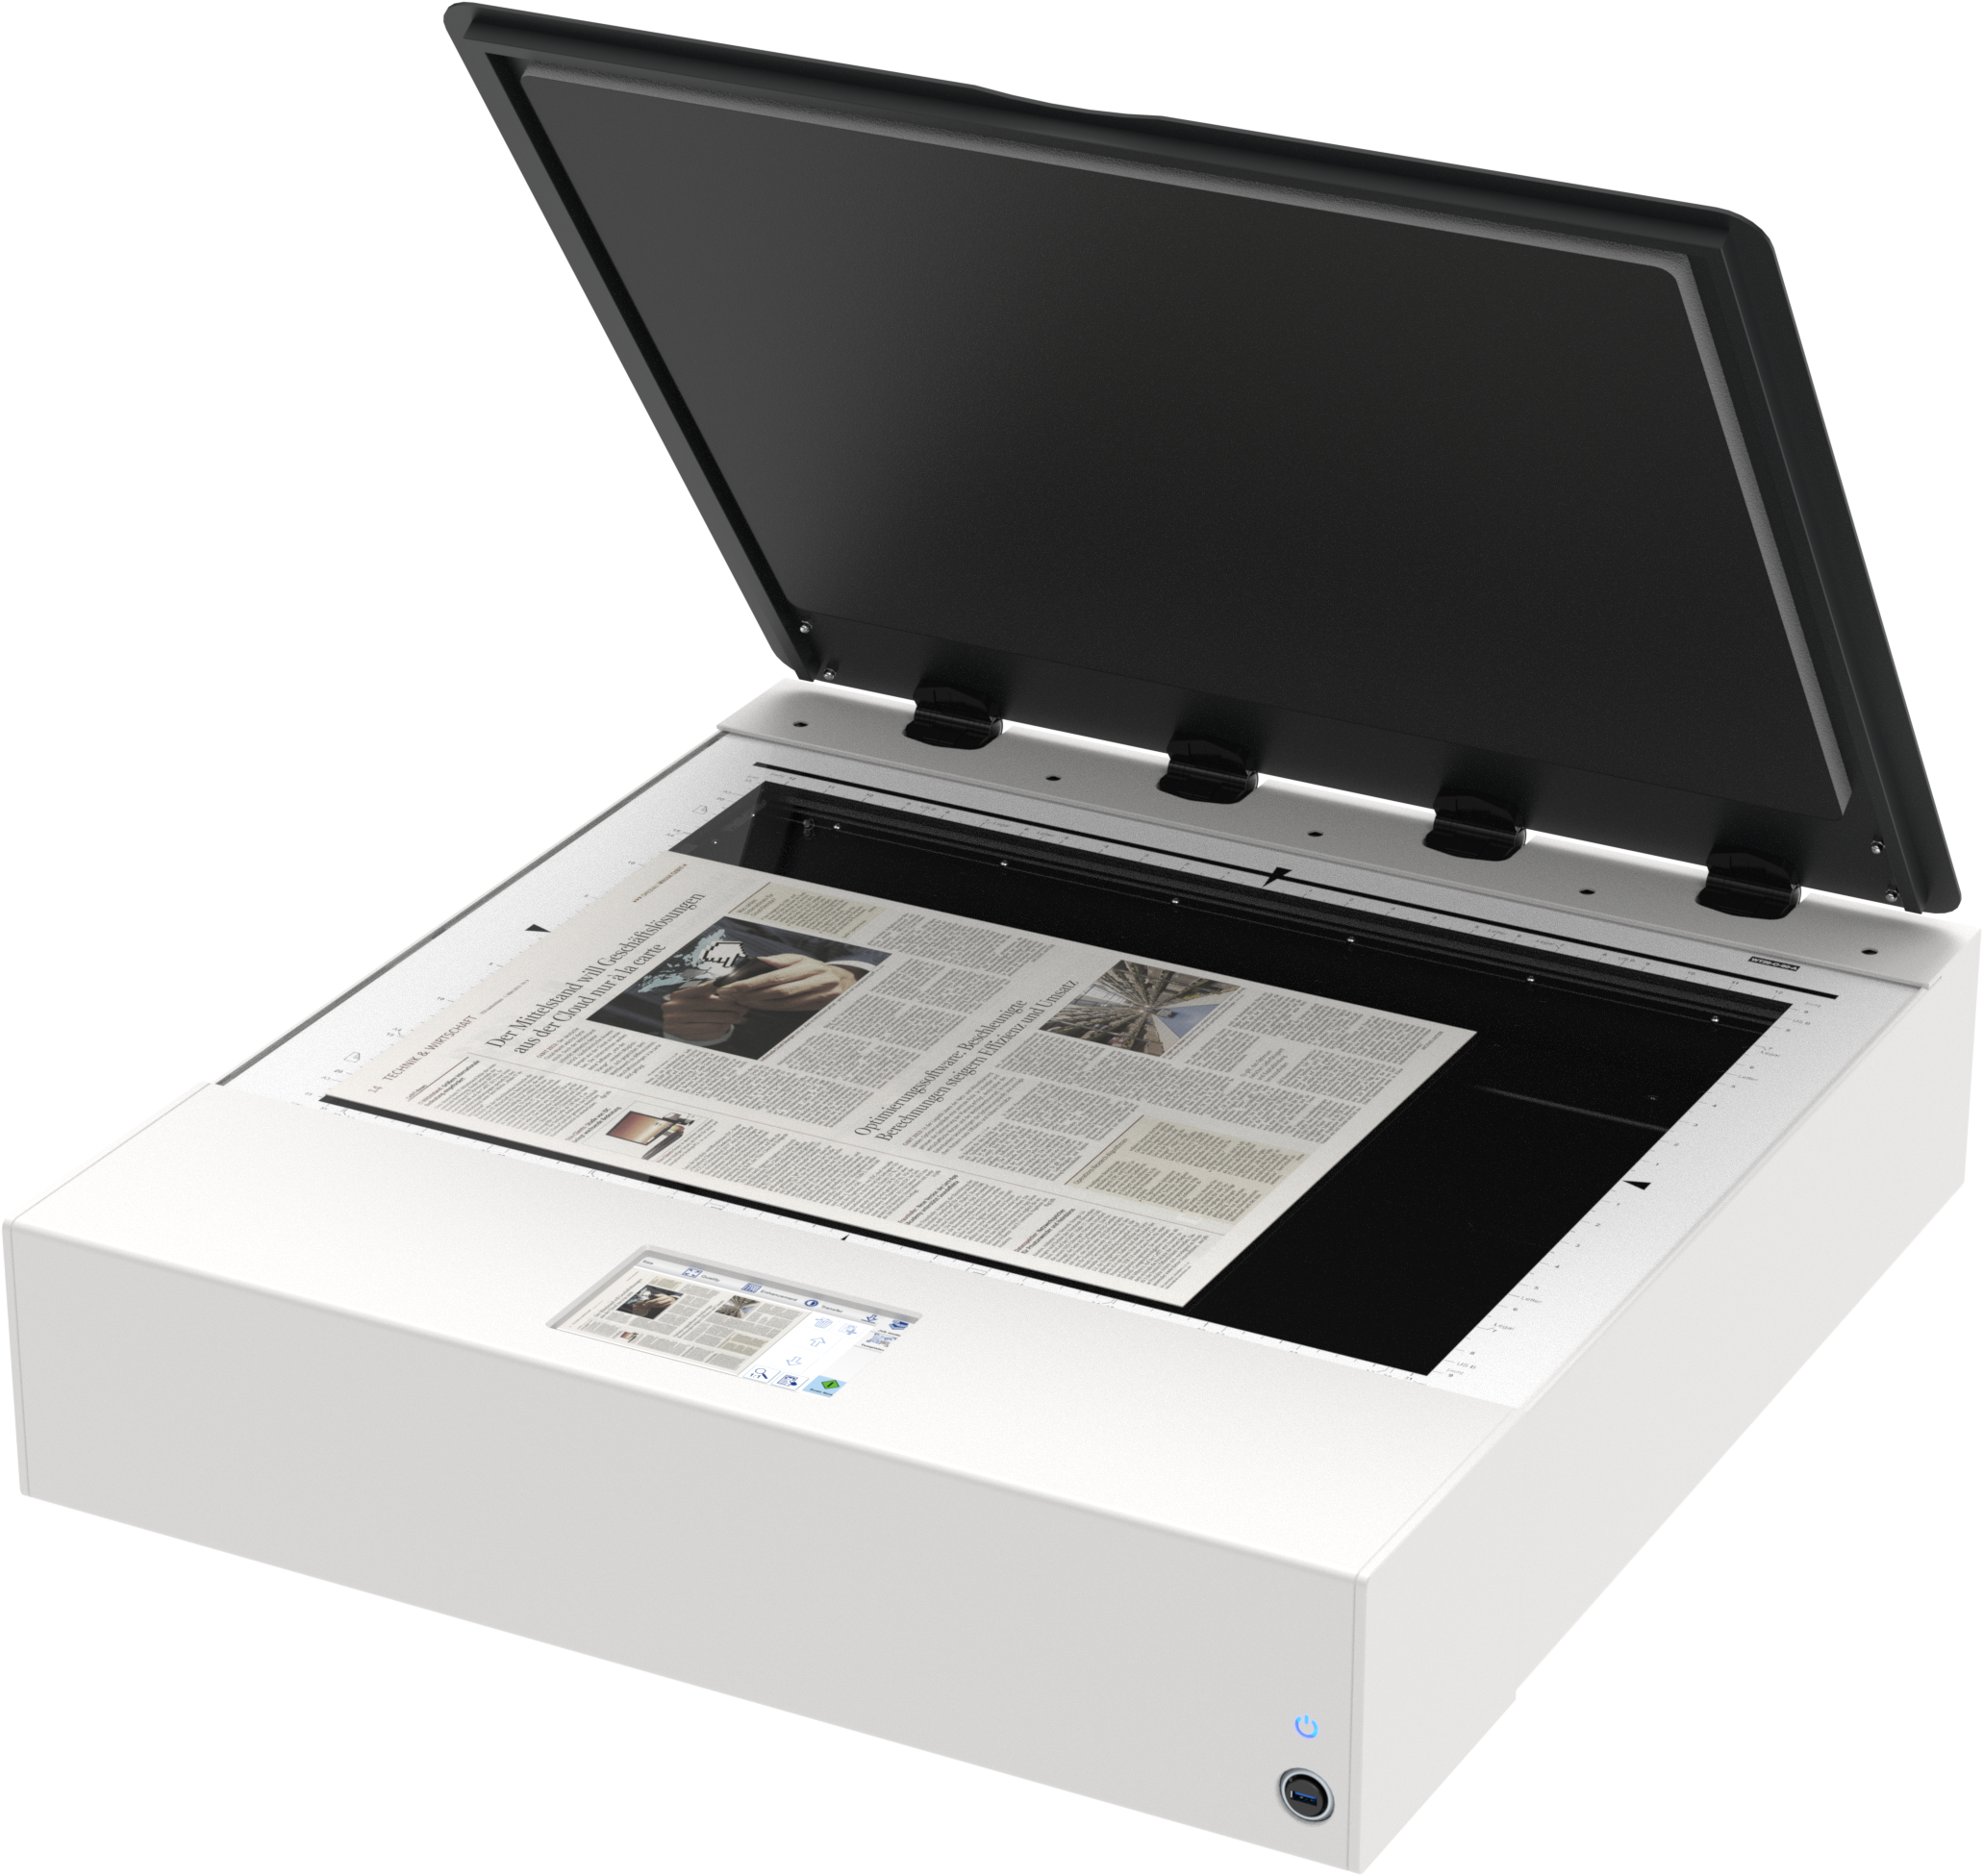 widetek flatbed scanners image access 2018